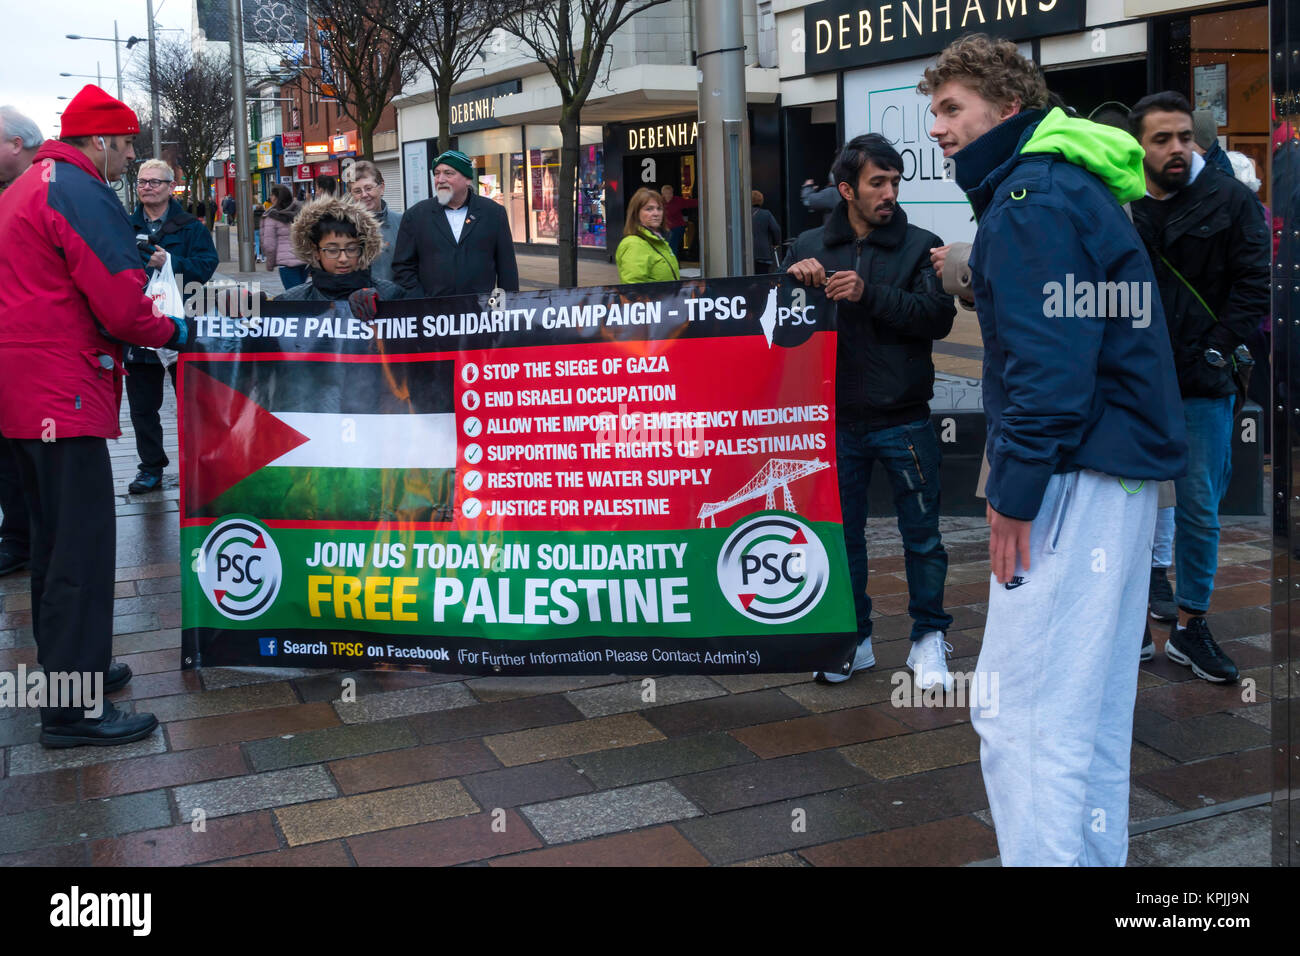 Middlesbrough Cleveland, UK. 16th Dec, 2017. There was a rally today among the busy Christmas shopping crowds in - Stock Image